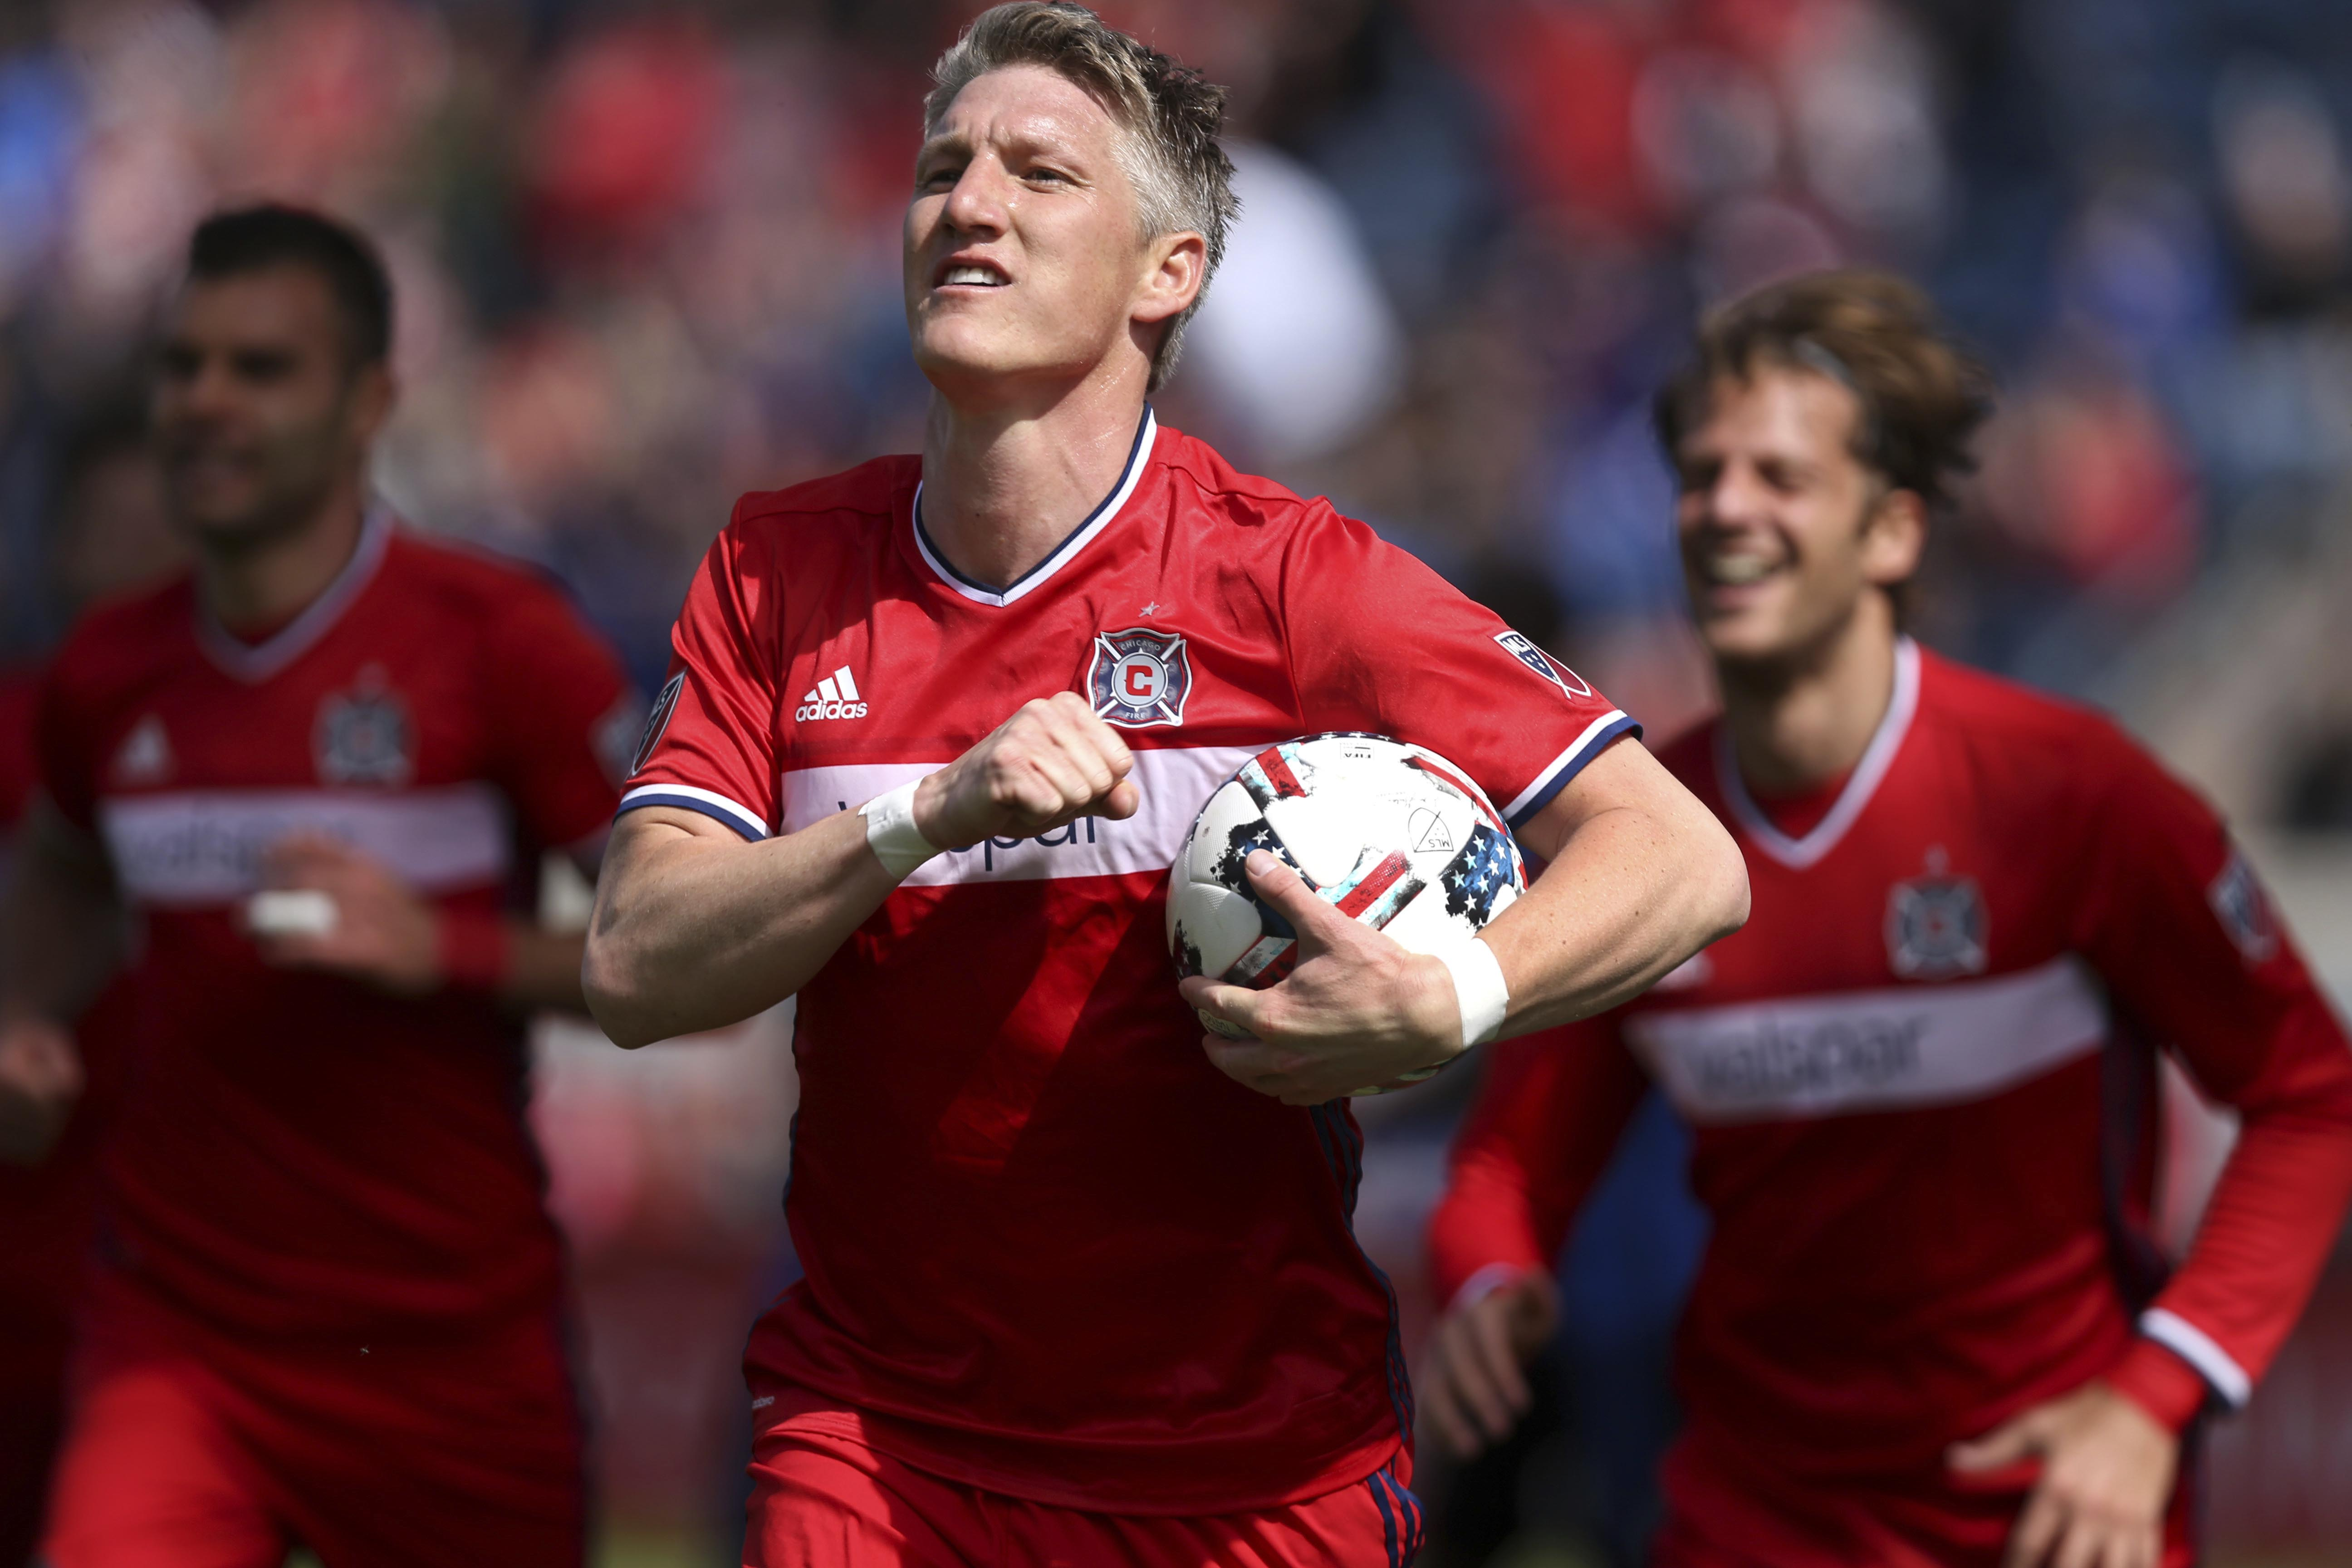 Chicago Fire midfielder Bastian Schweinsteiger (31) celebrates after scoring a goal in the first half of an MLS  soccer game against the Montreal Impact at Toyota Park in Bridgeview, Illinois, on Saturday, April 1, 2017. Photo: AP